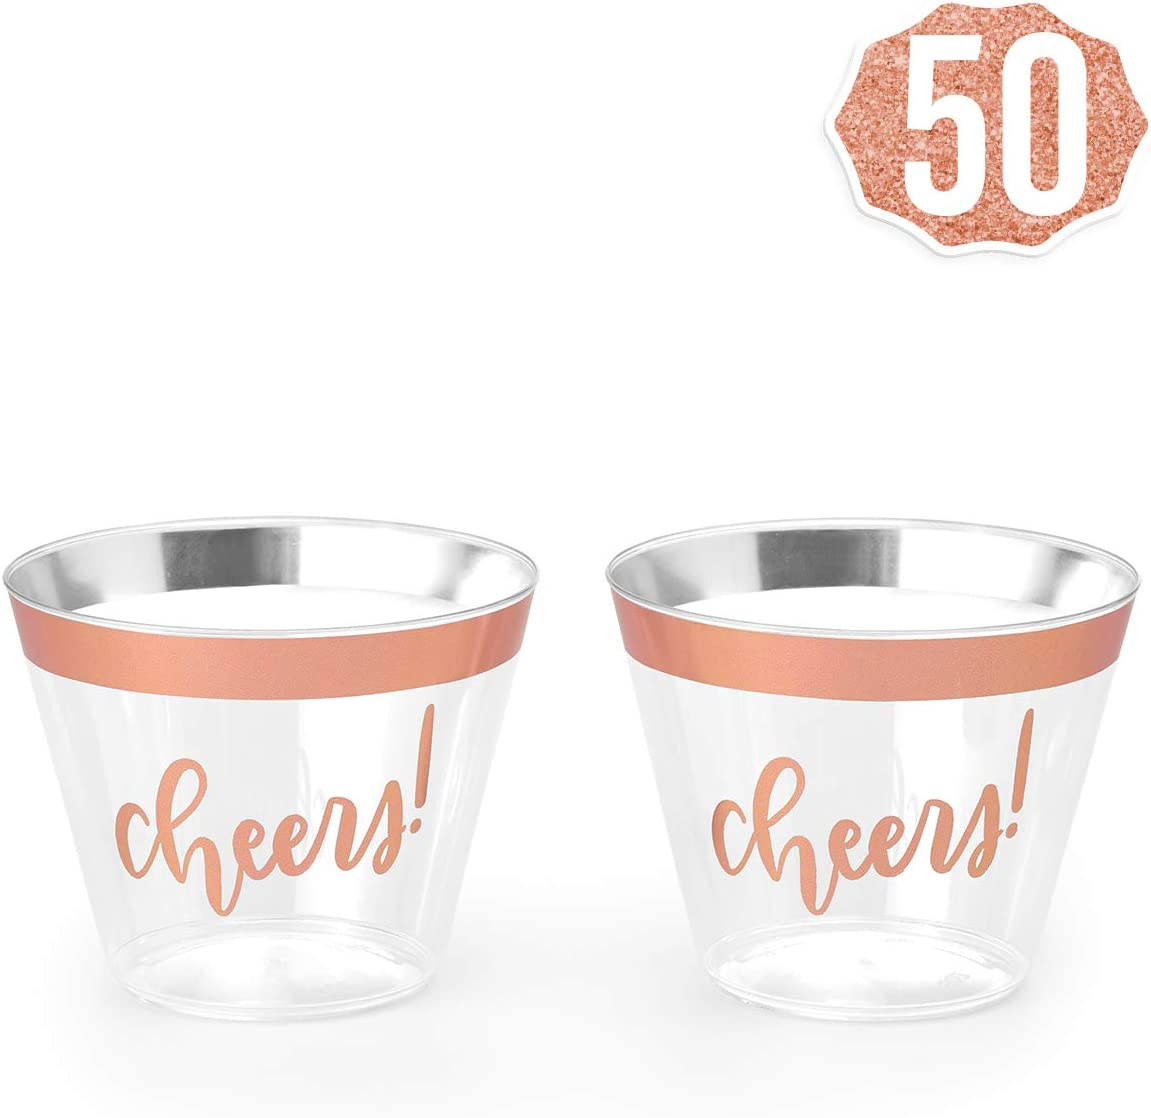 Custom Wedding Favors Personalized Styrofoam Cups Cheers Cups for Wedding Engagement Party Cups